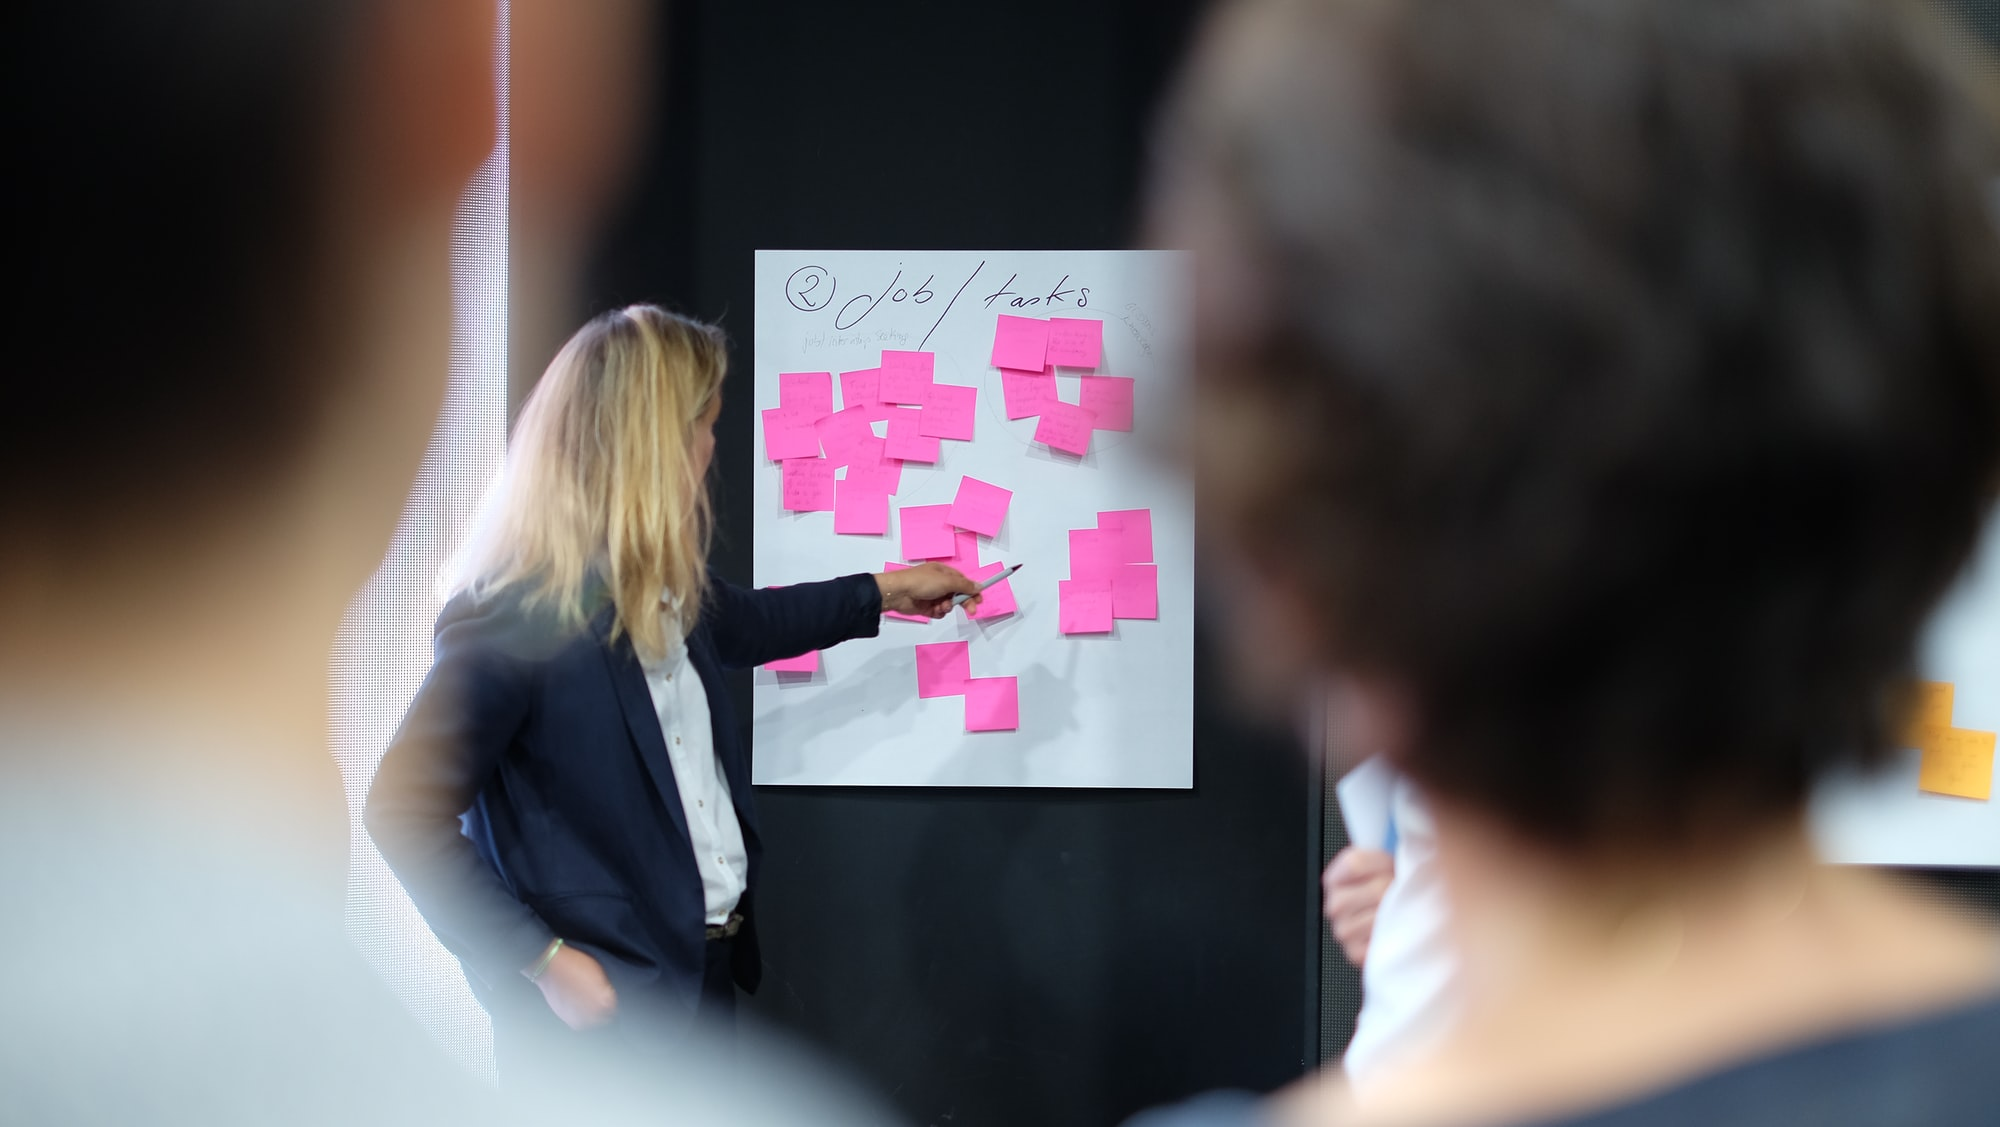 Jobs to be Done and the future of product design